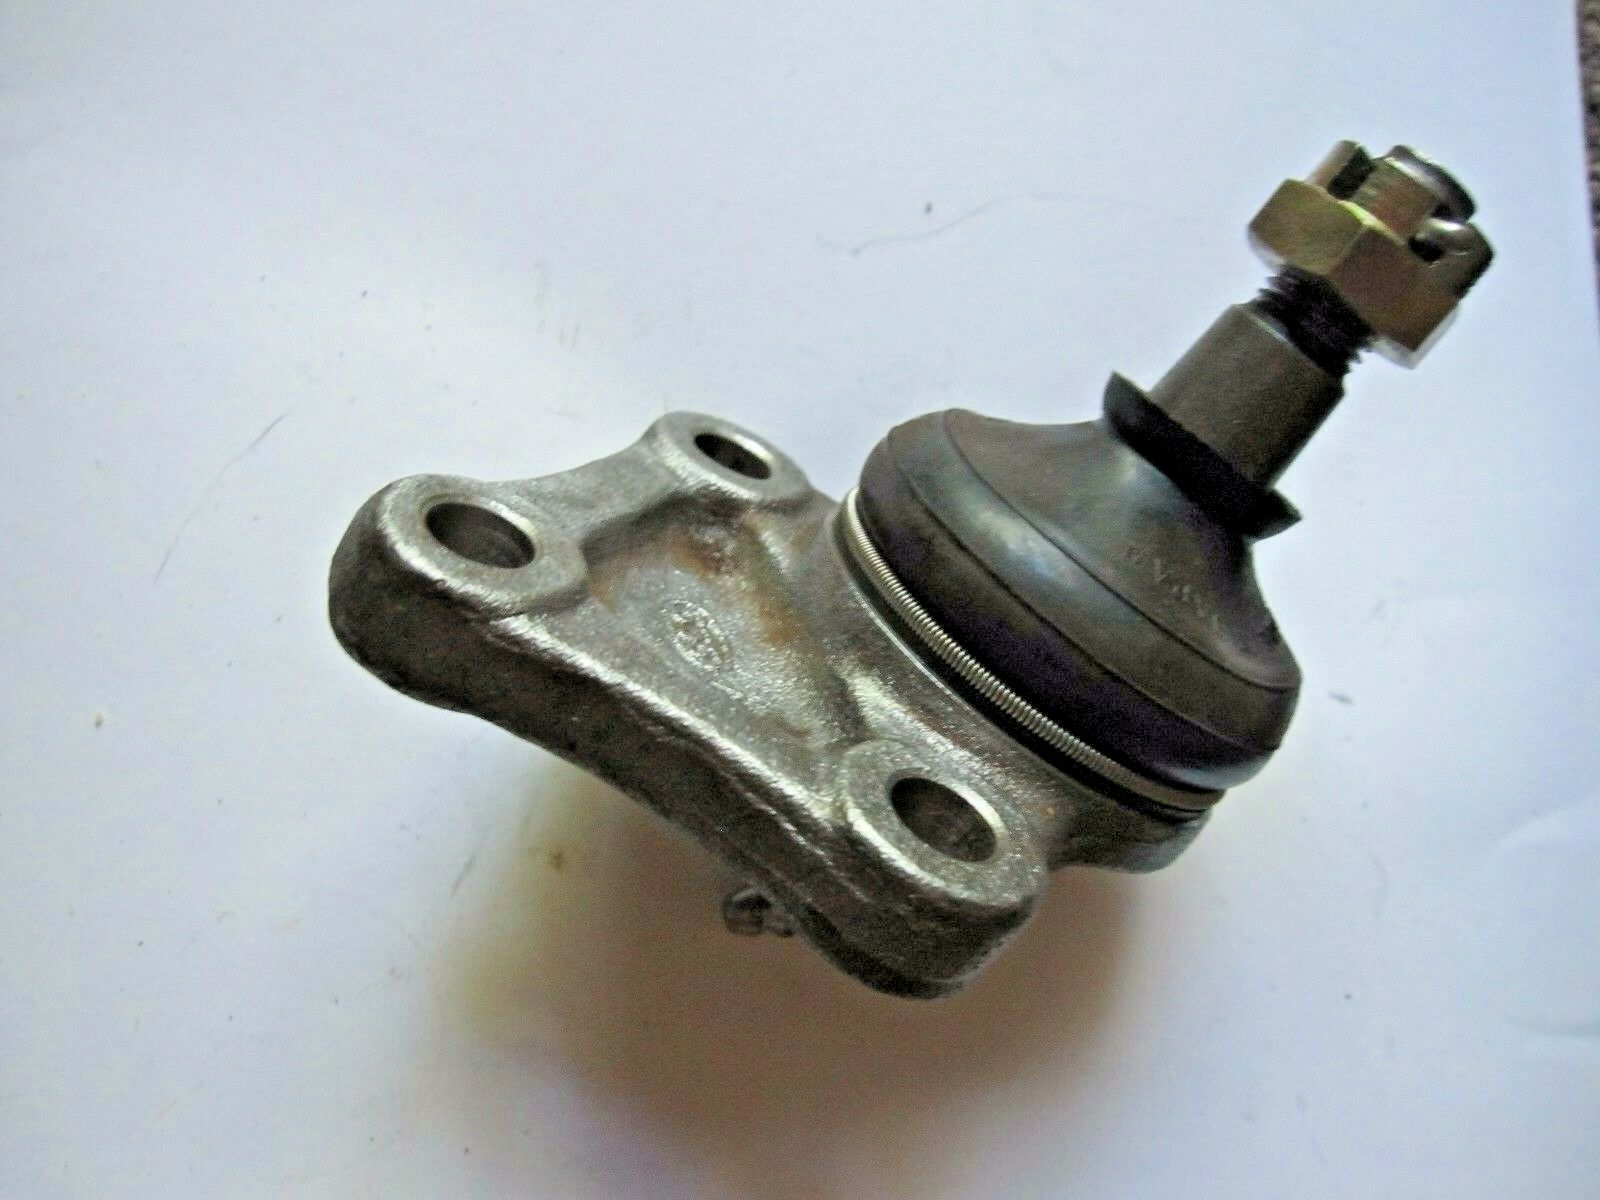 For Ford Courier Mazda B1600 B2000 Front Lower Left or Right Ball Joint Mevotech